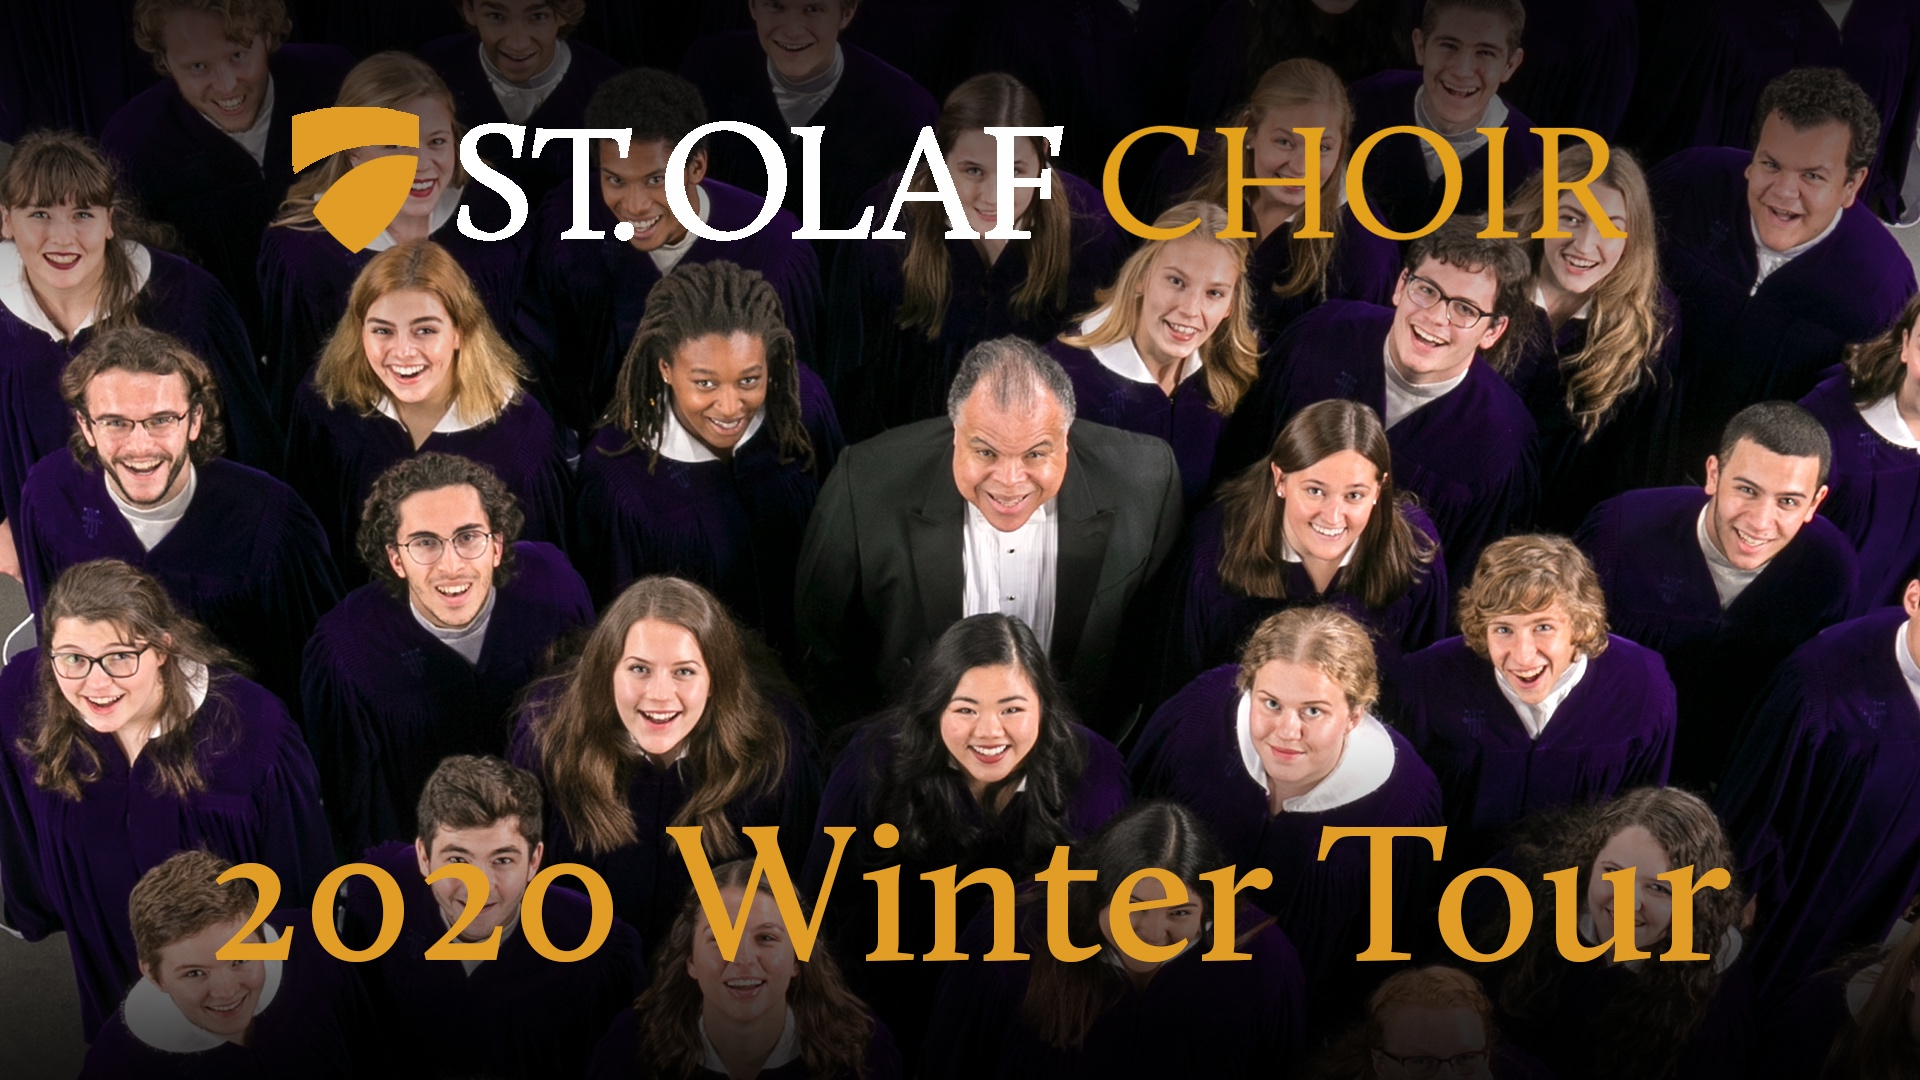 St. Olaf Choir – New Haven, Ct – Calendar Intended For University Of New Haven Ct Calender